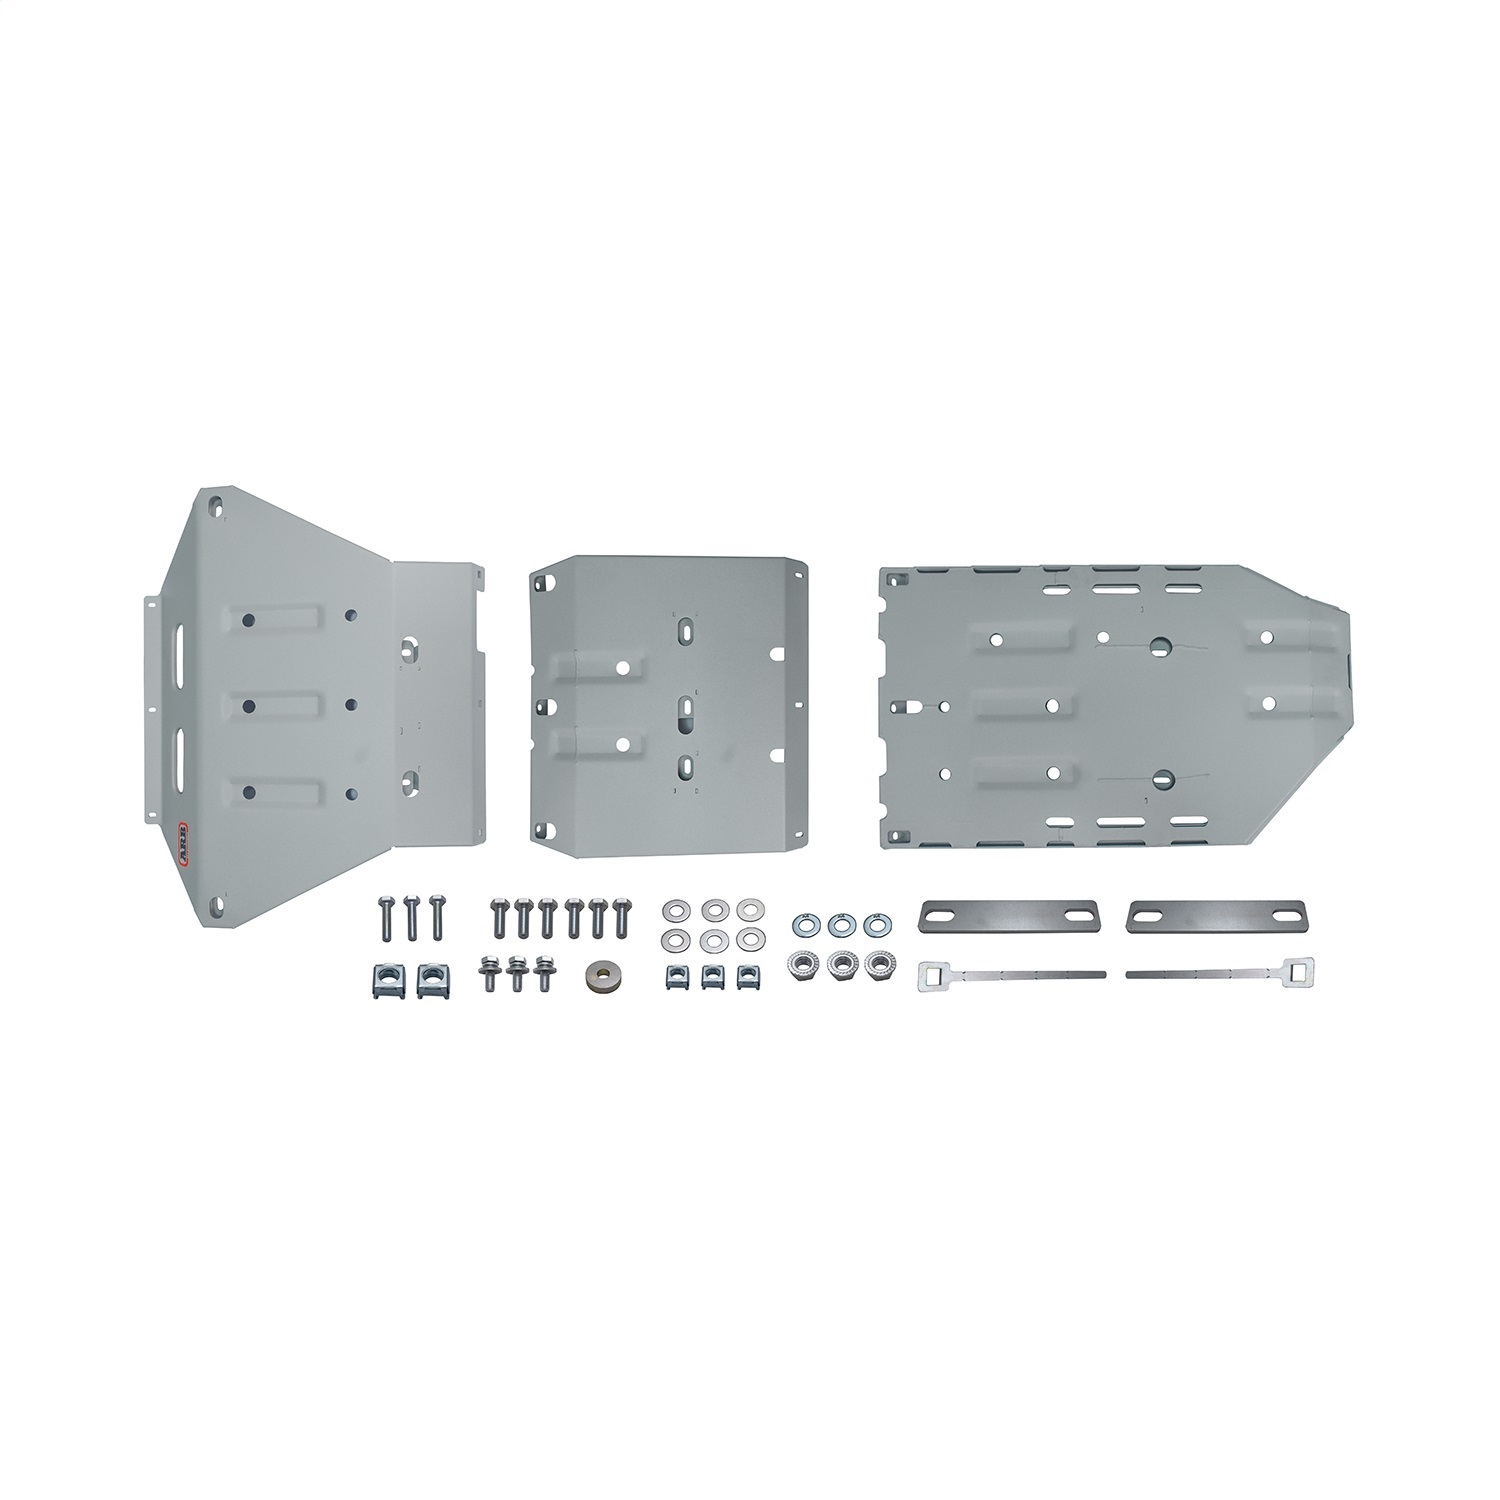 ARB 4x4 Accessories 5440230 Under Vehicle Protection Kit Fits 19-20 Ranger